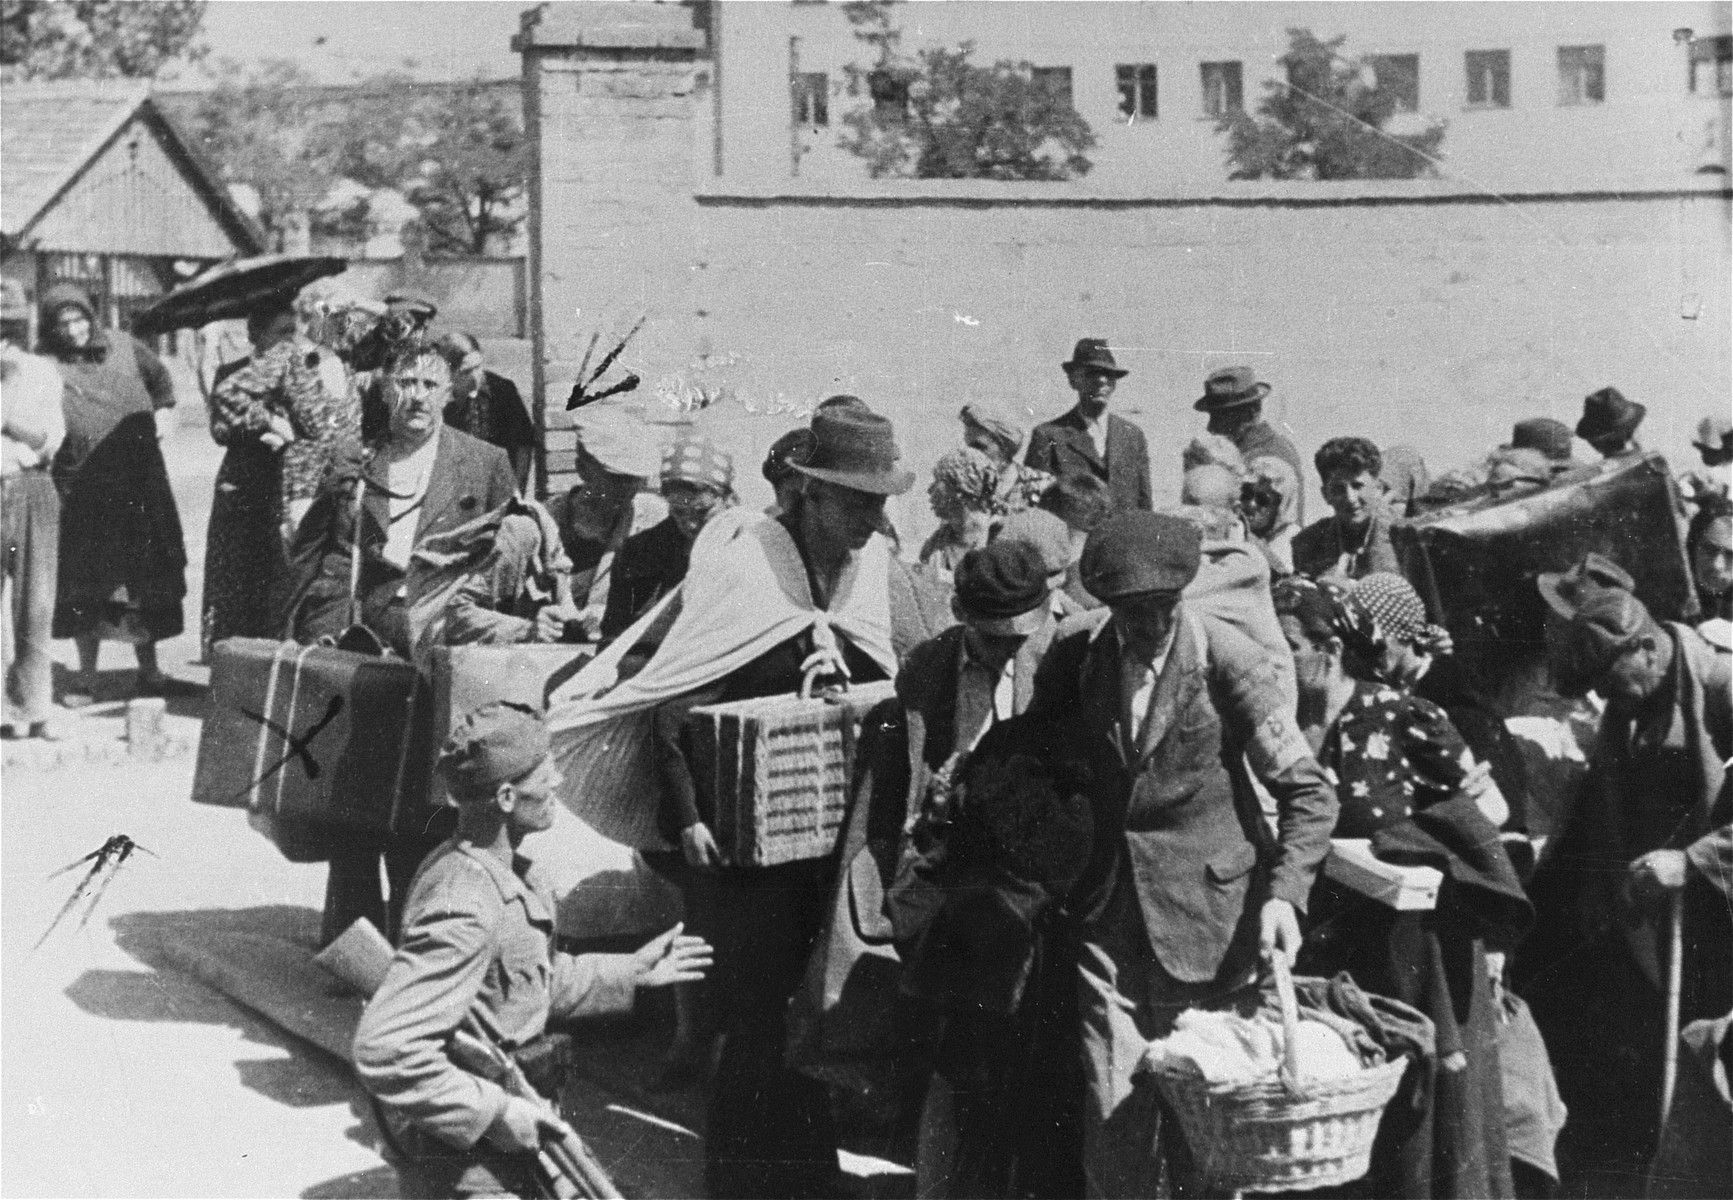 Jews carrying suitcases and baskets, are rounded-up for deportation from Zrenjanin, Serbia.